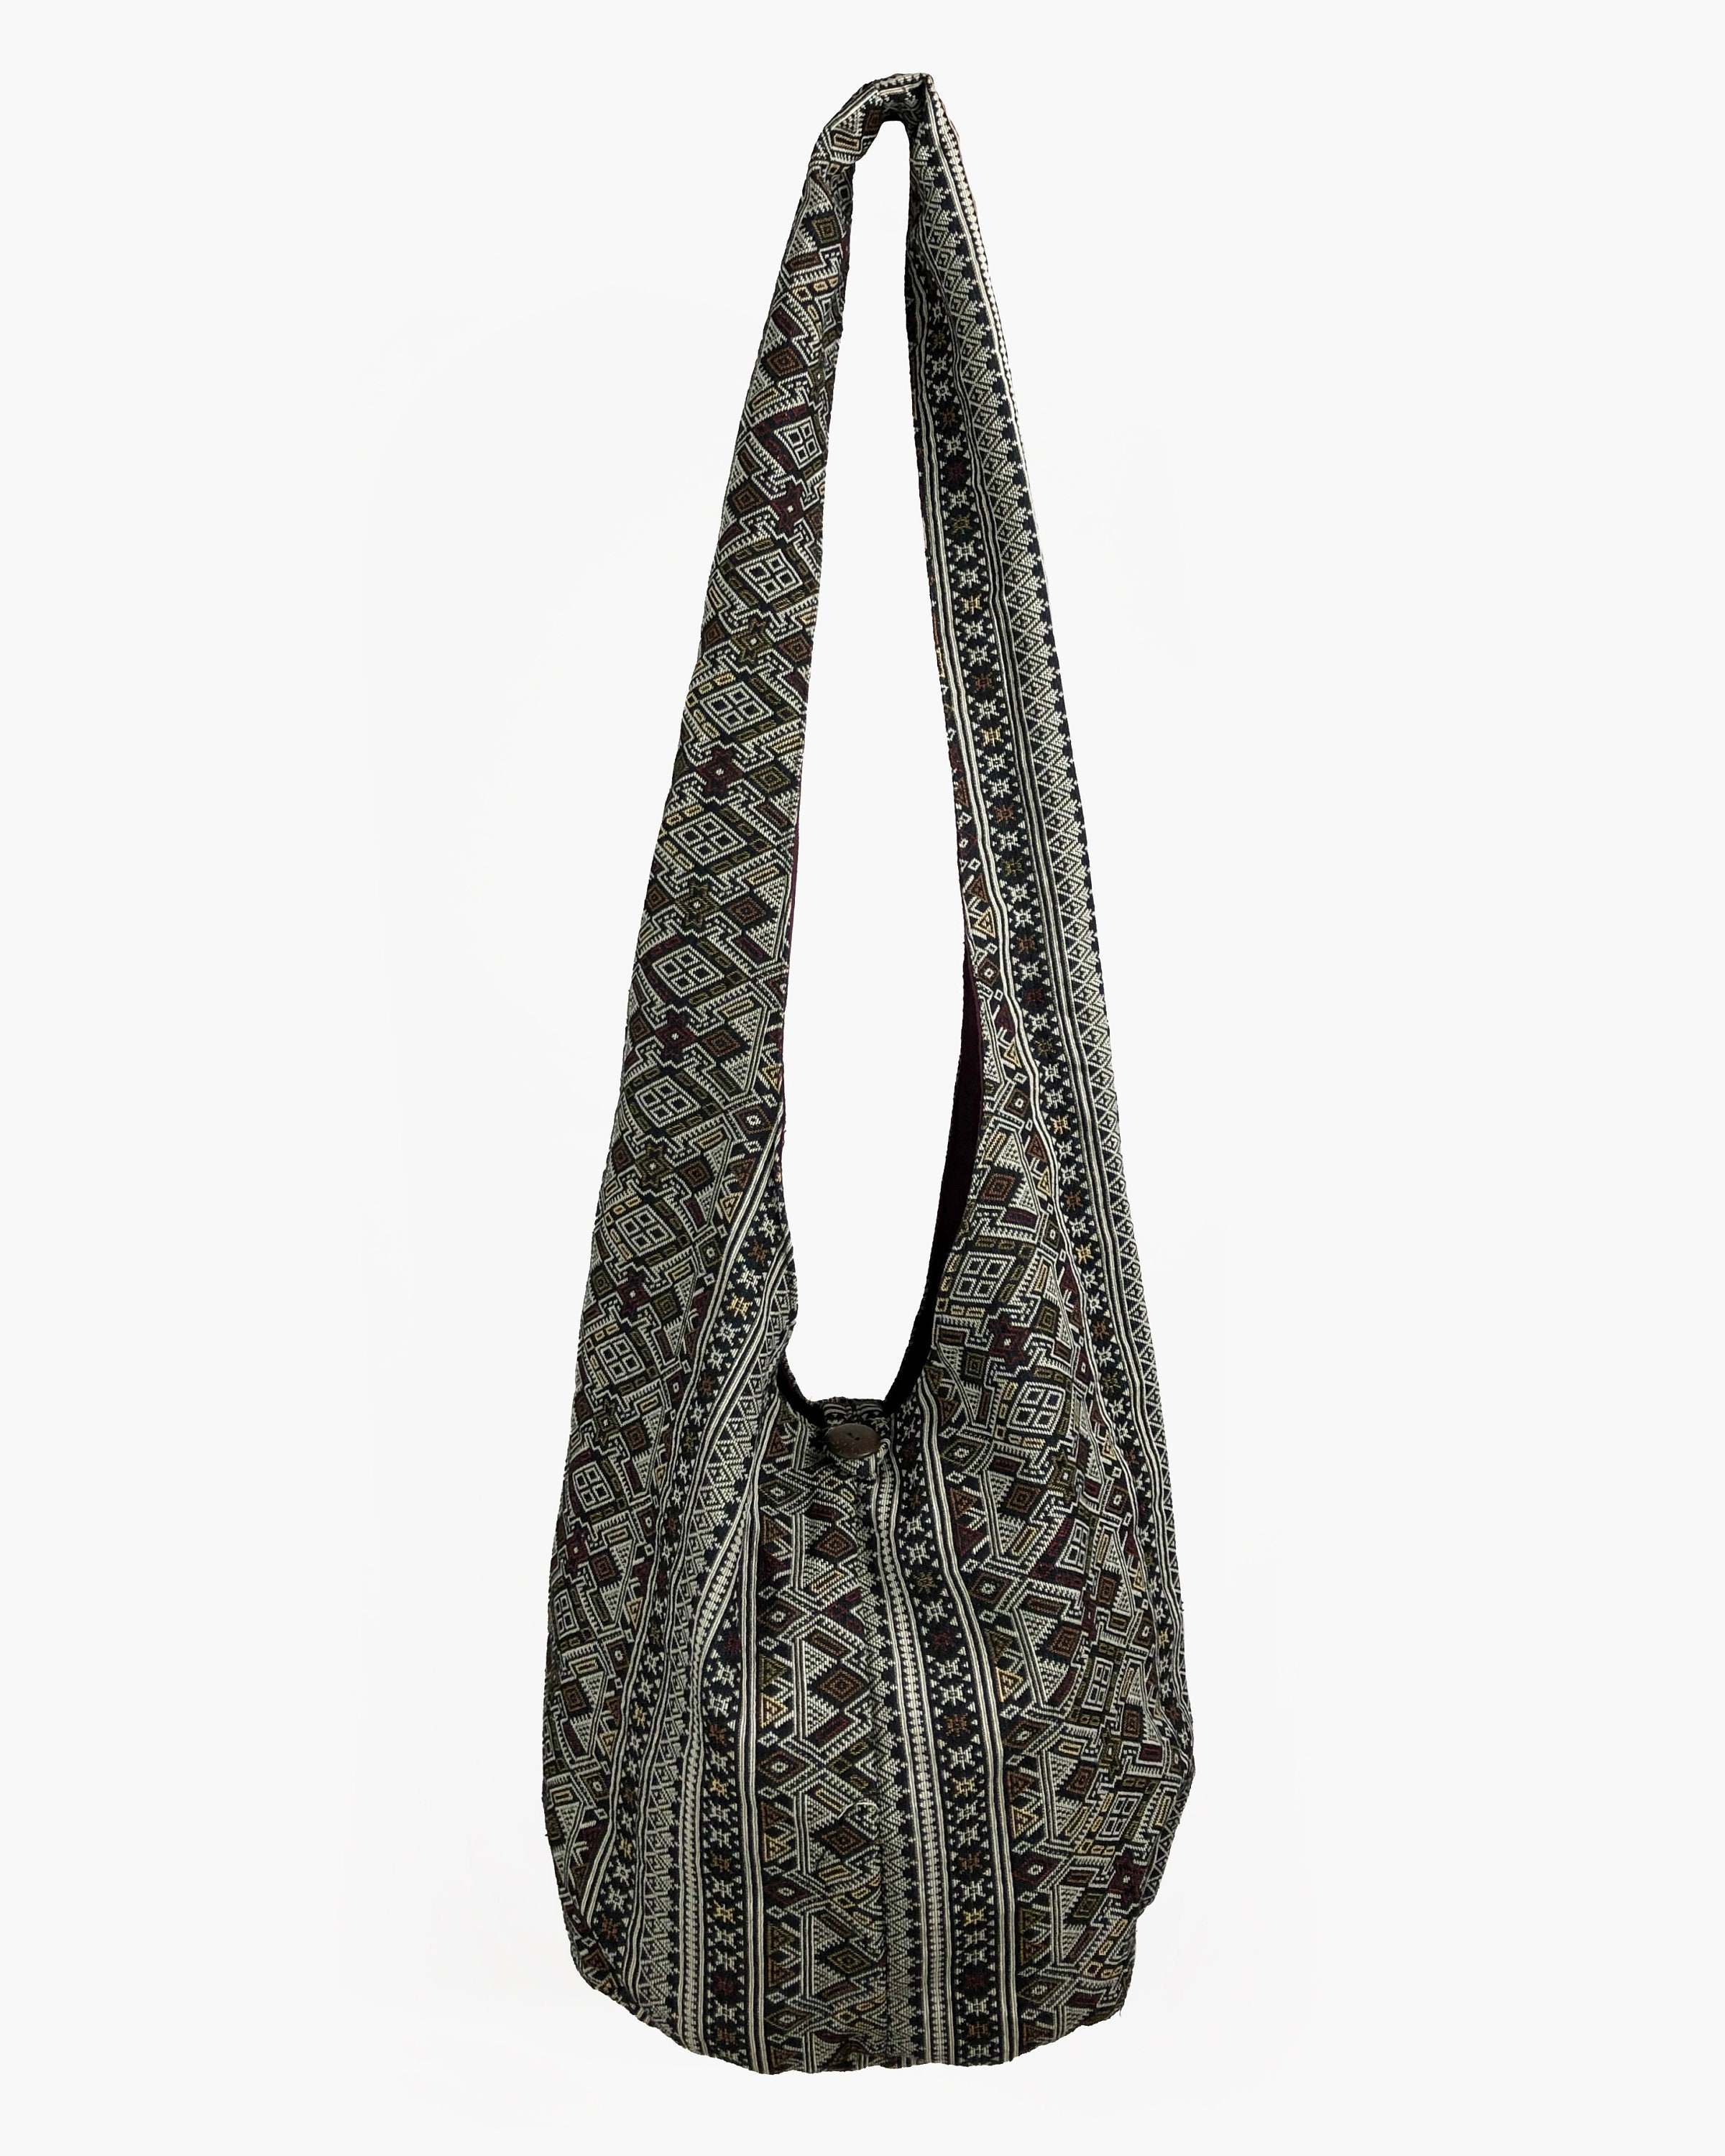 2061ed62ef83 Hippie crossbody bag purse, Ethnic Sling Bag - Unisex